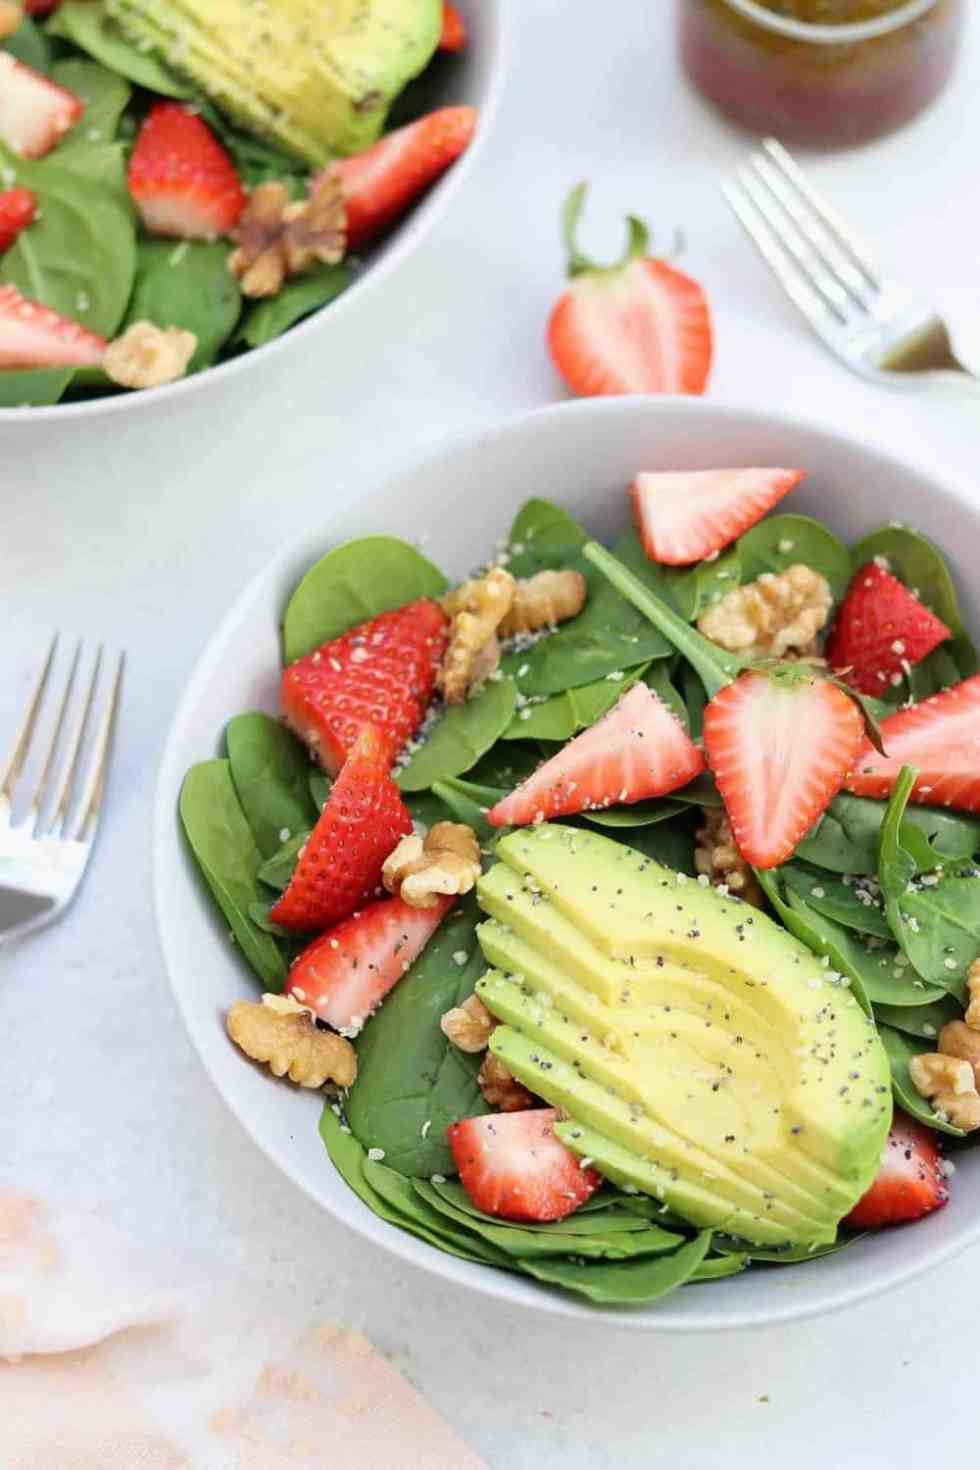 strawberry spinach salad with avocado in a grey bowl with two forks.